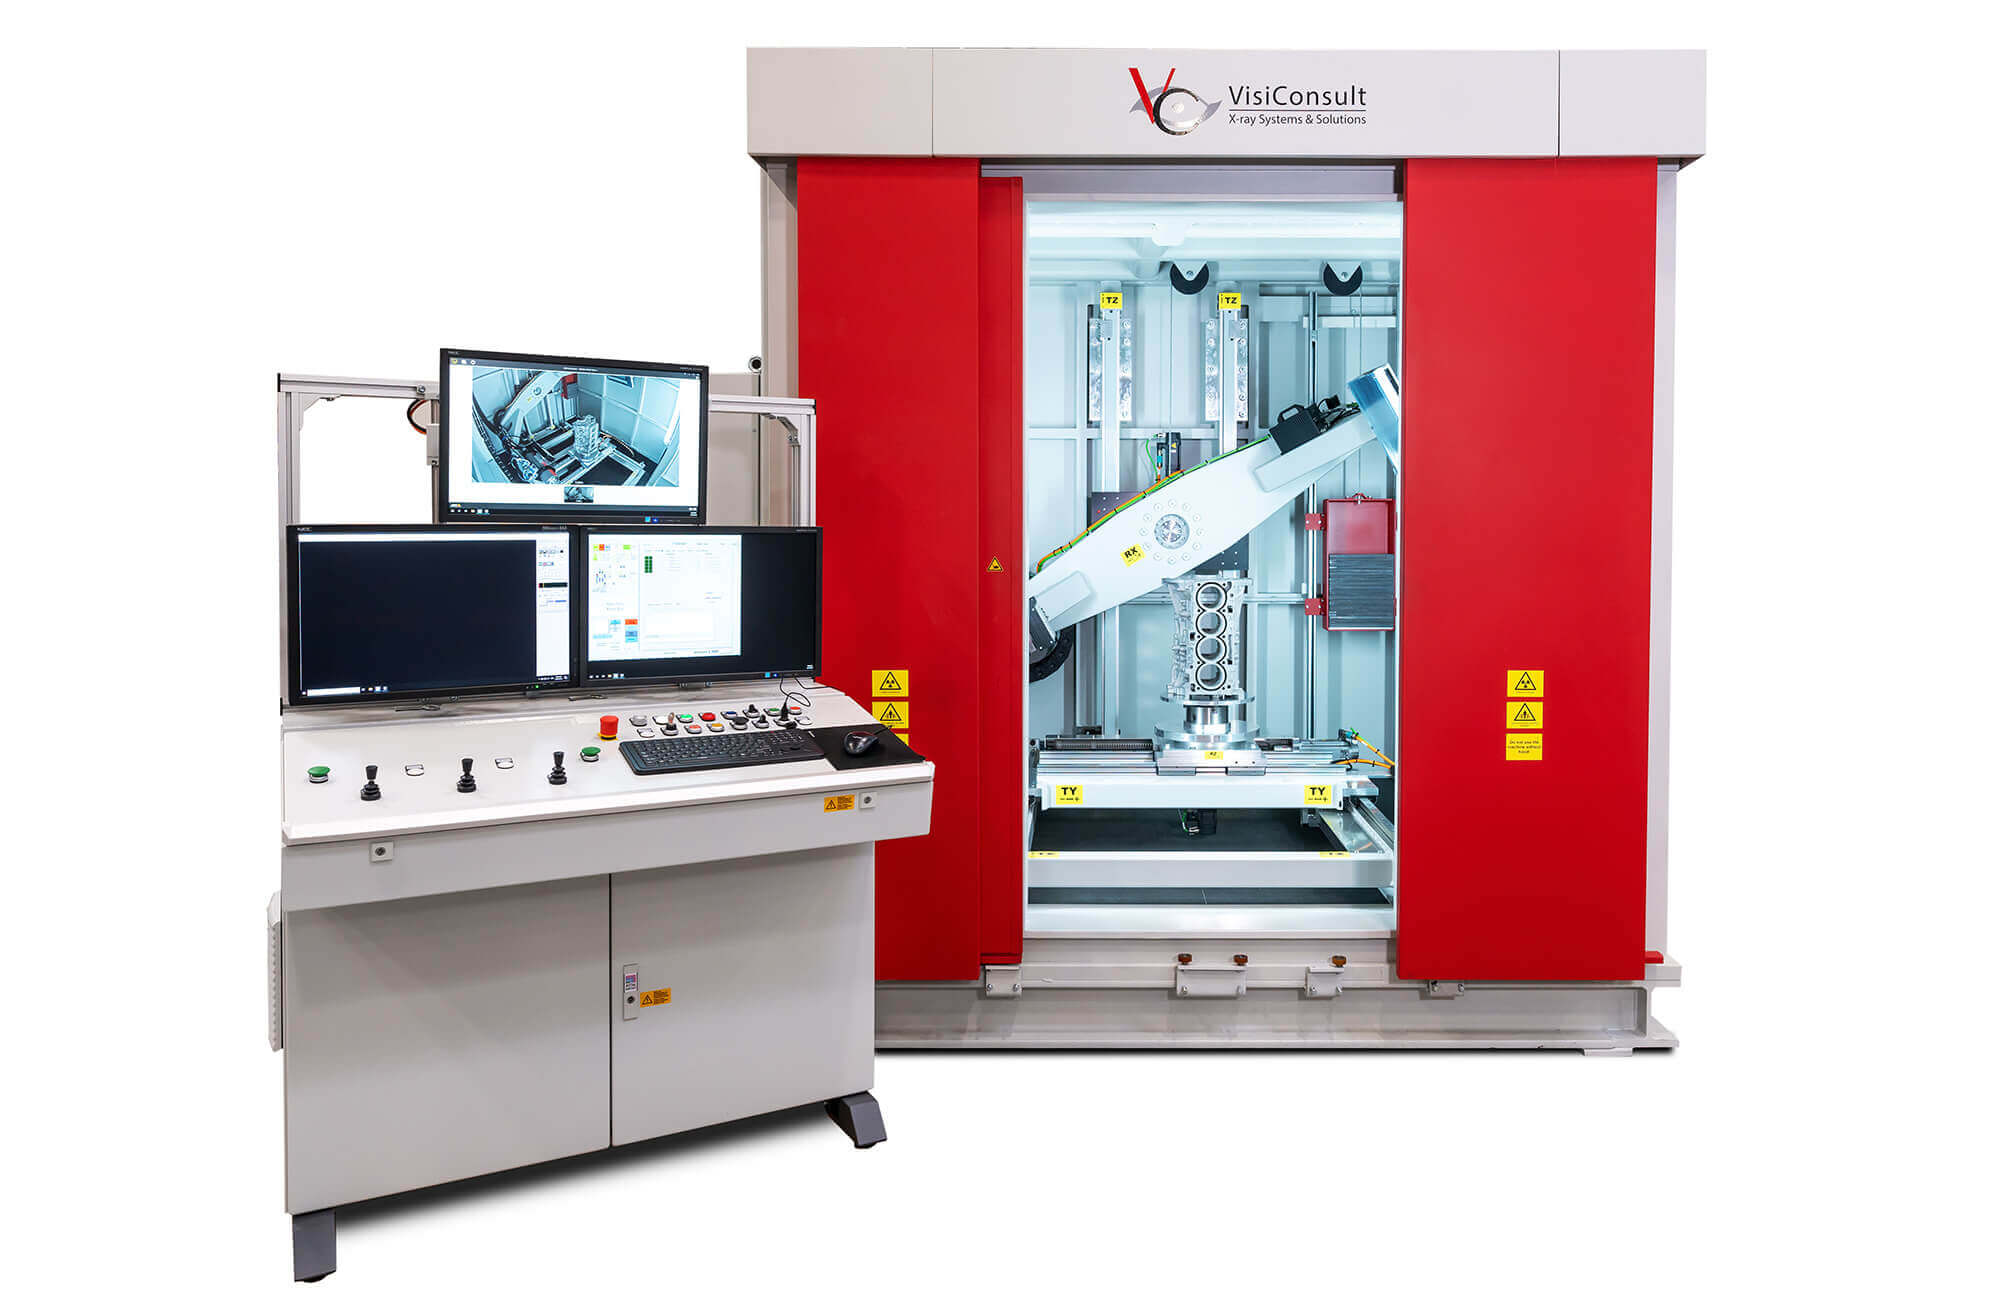 industrial x-ray machine visiconsult cabin